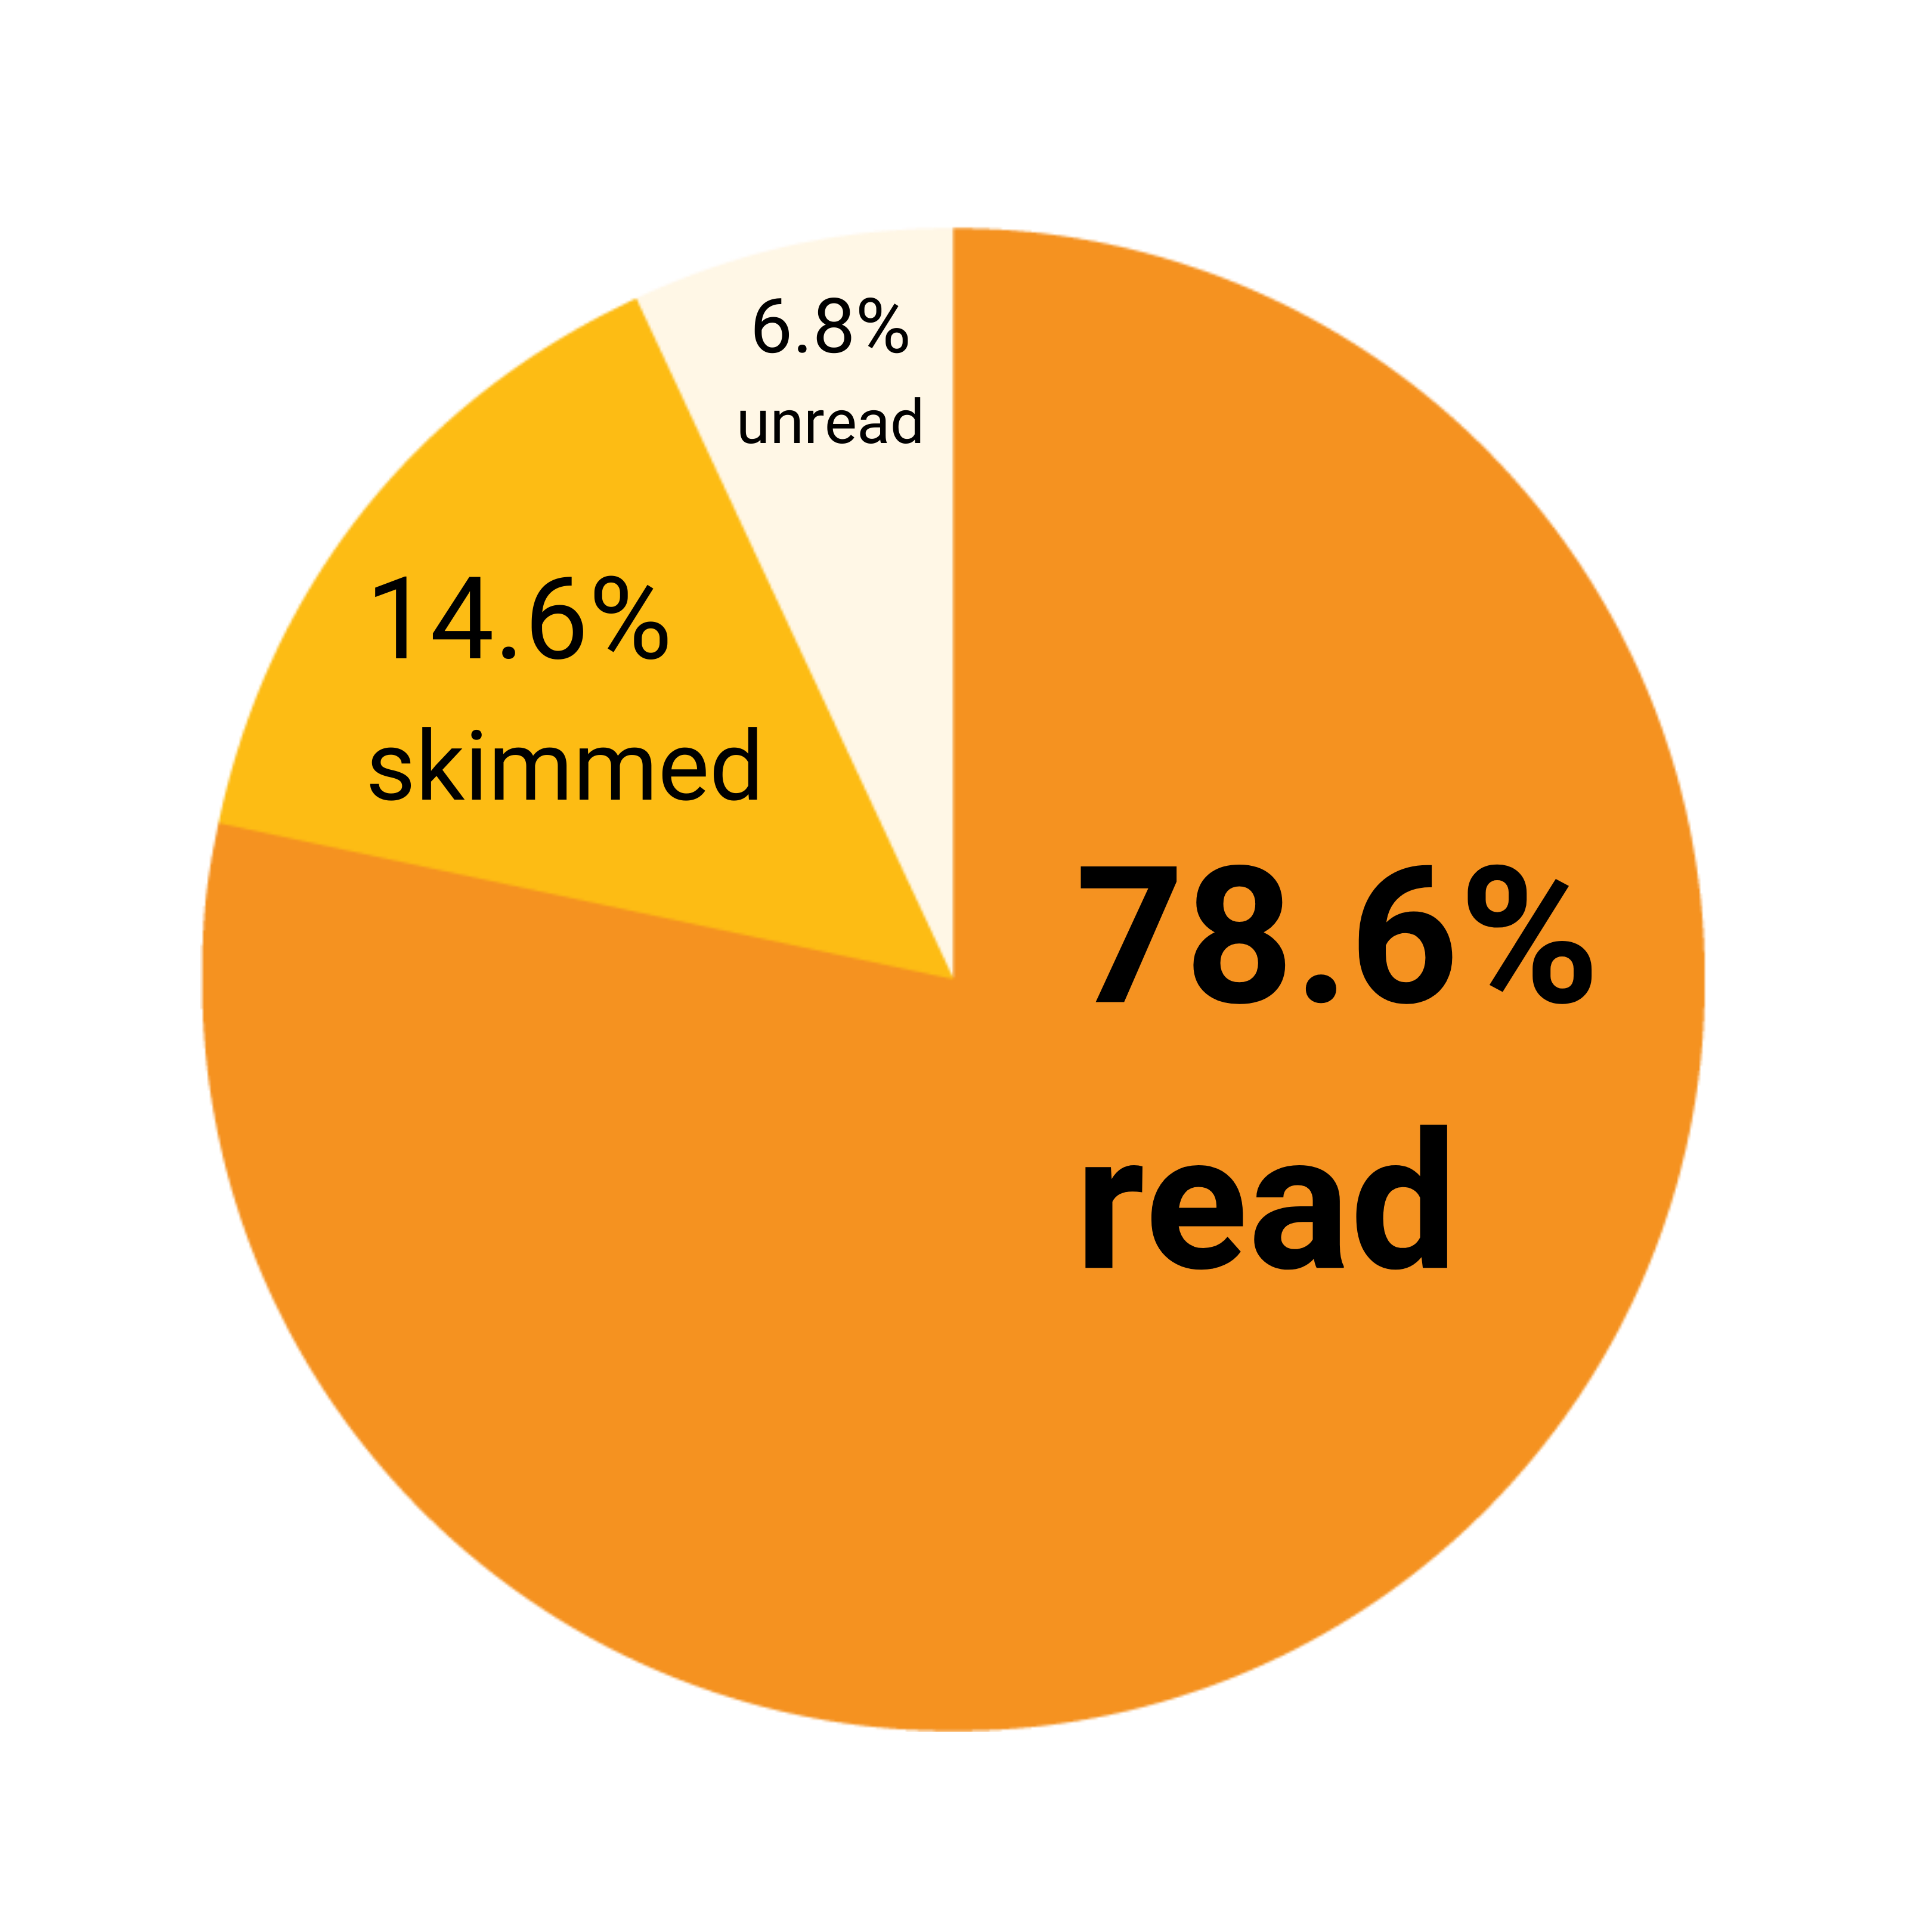 ohs_pie chart (1)